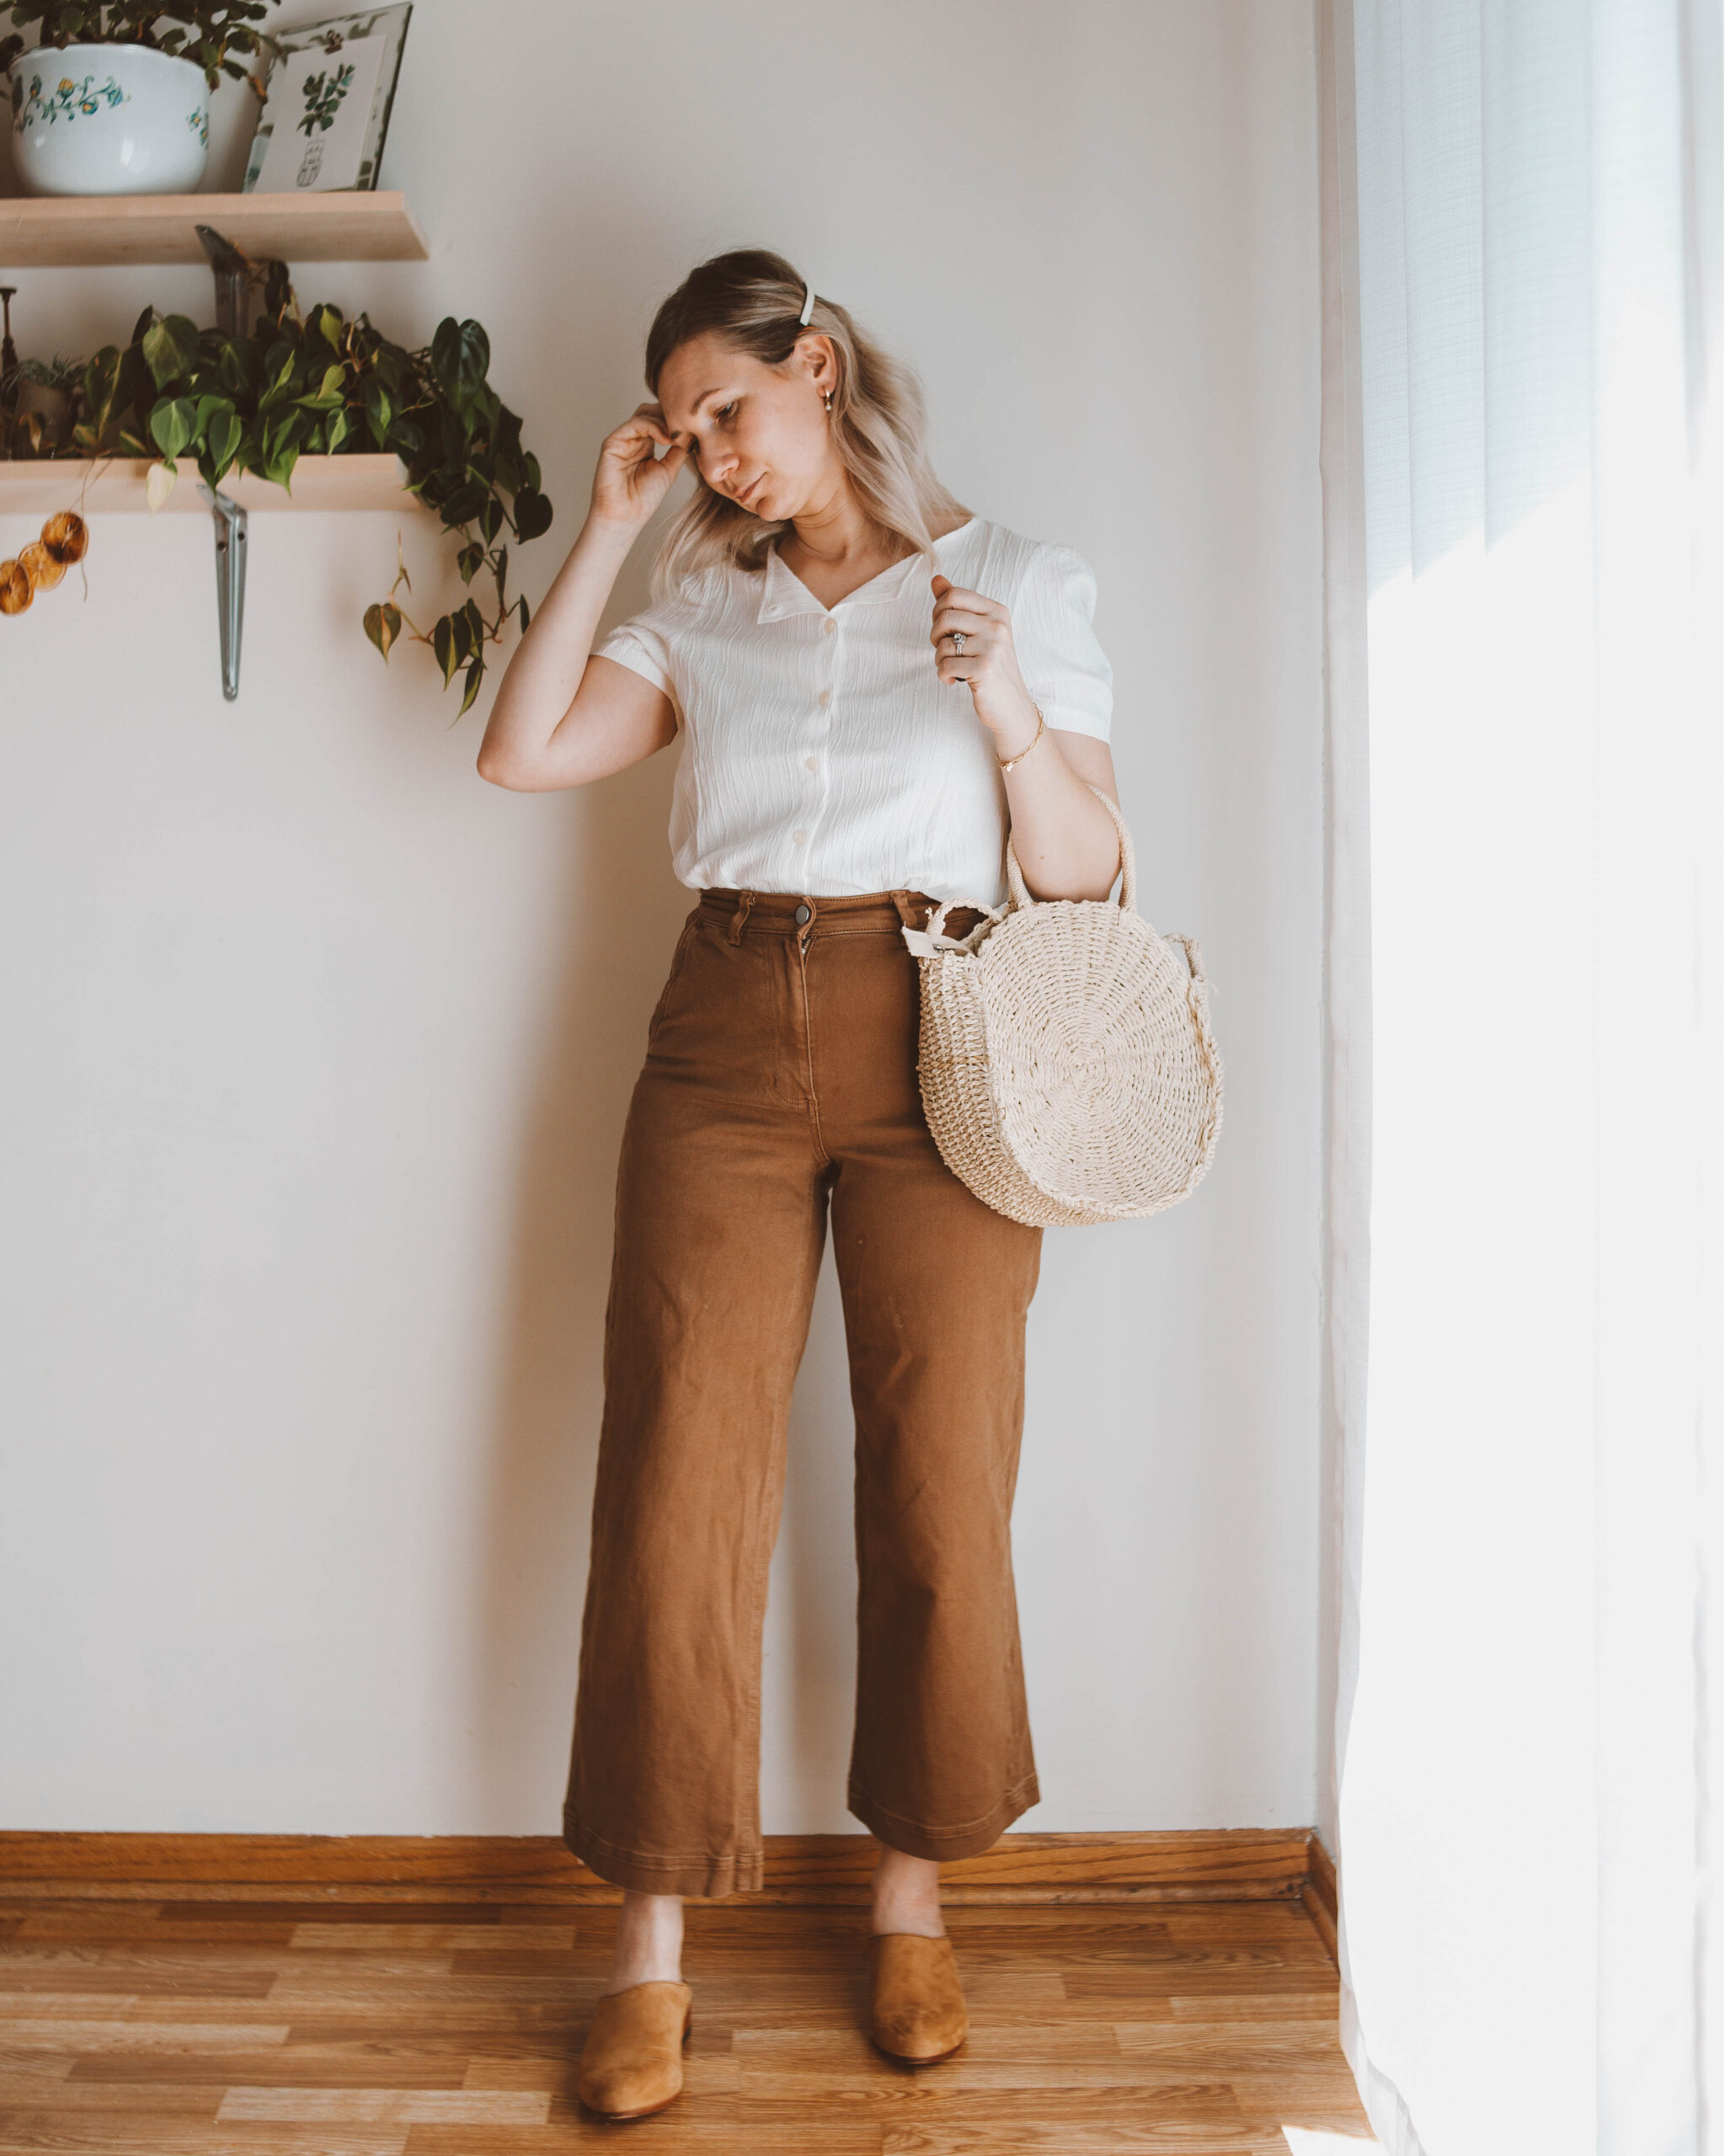 spring outfit ideas, everlane wide leg crop pants, tradlands blouse, circle straw bag, nisolo mules